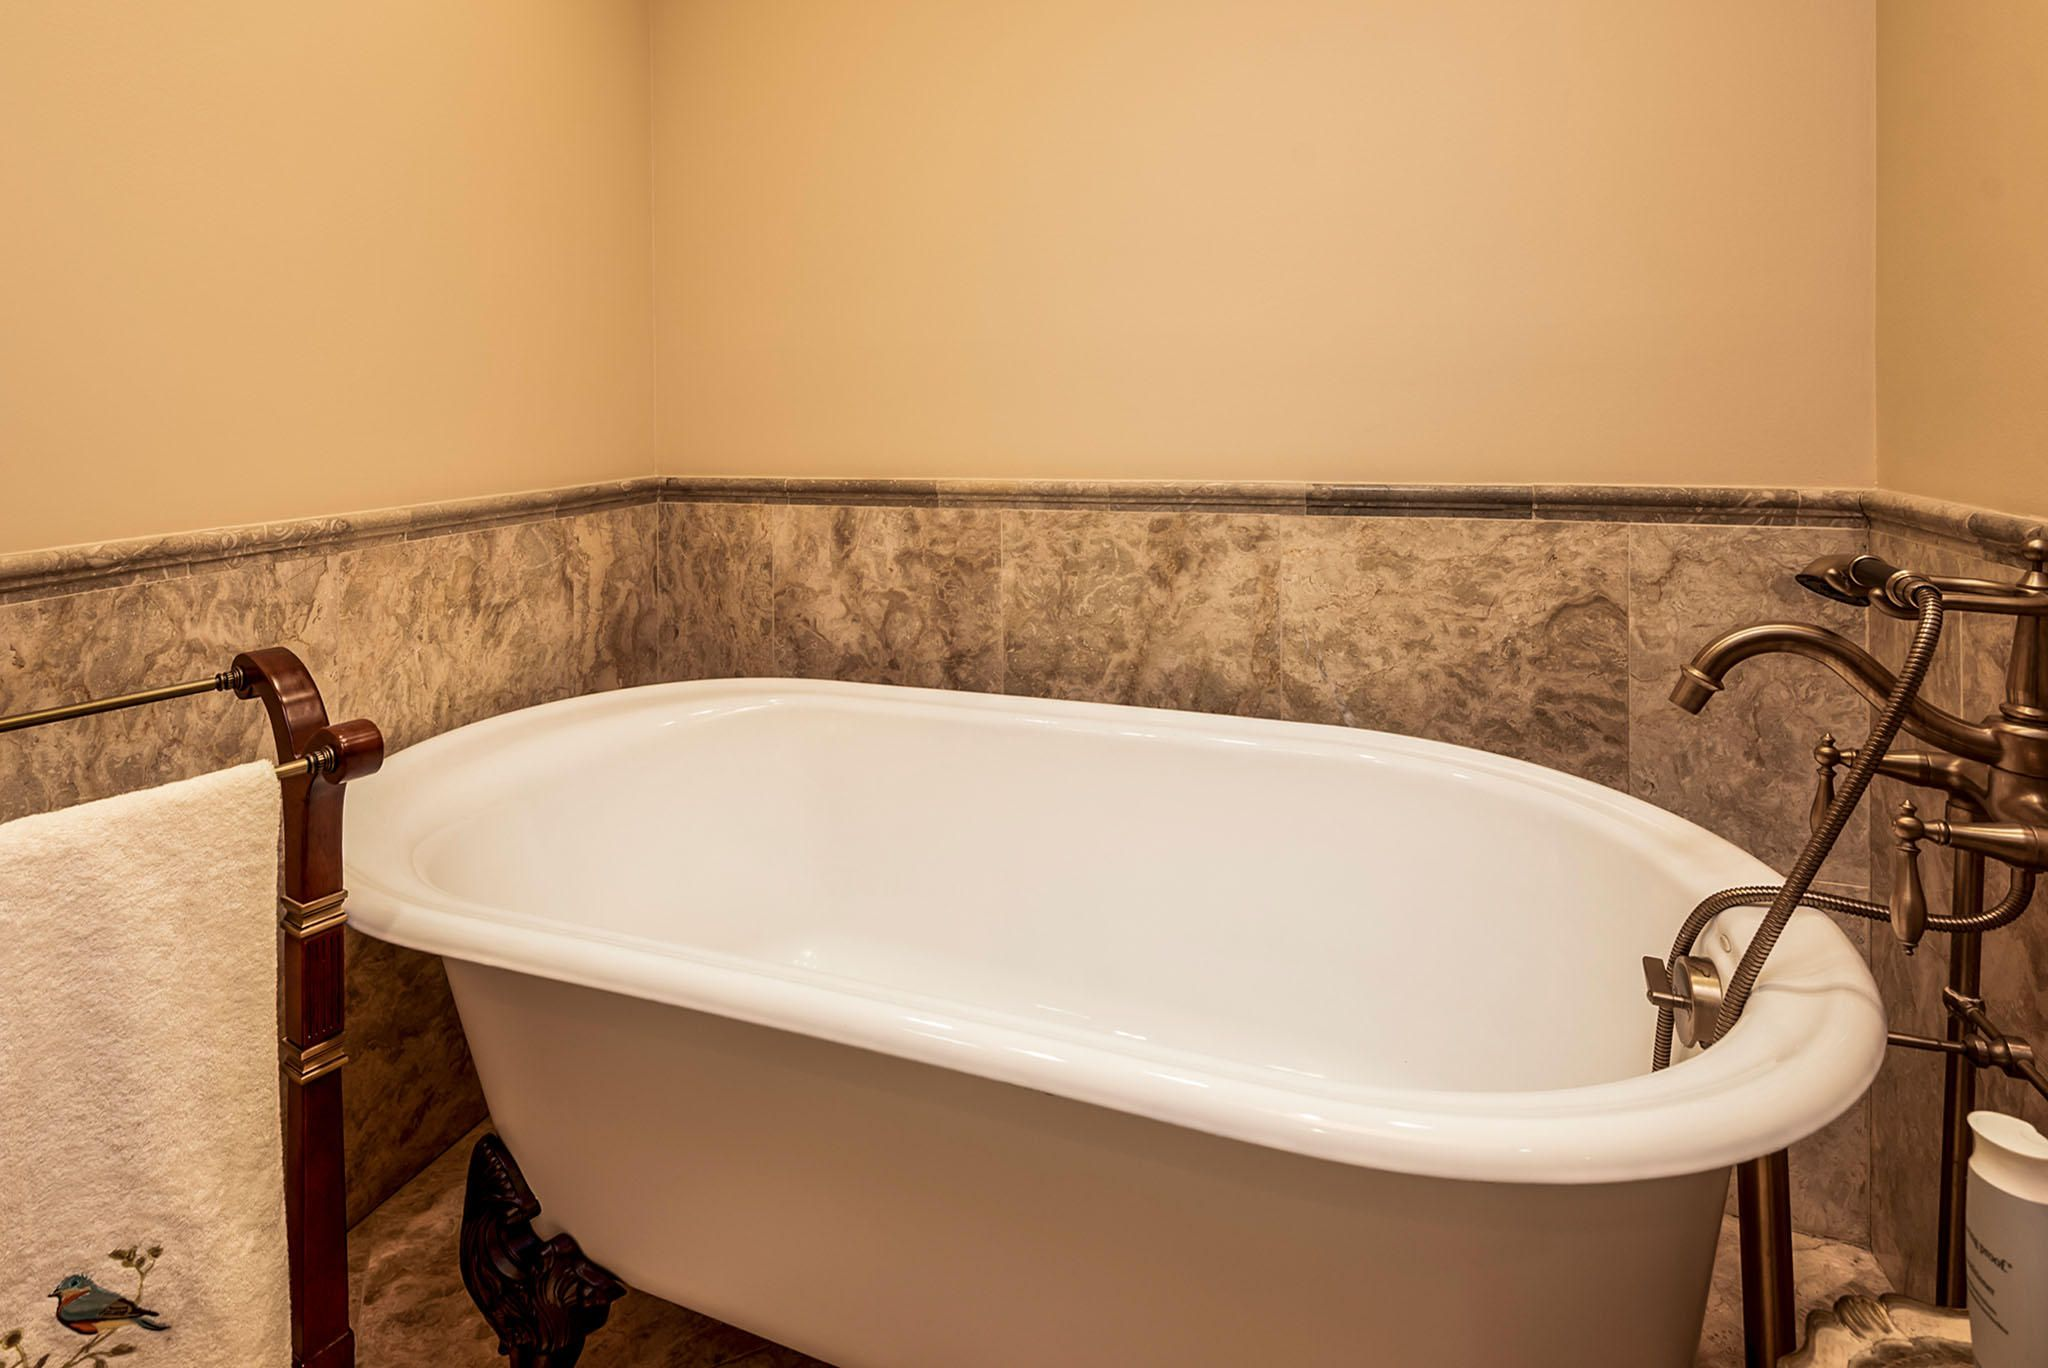 Relax in the Claw-Footed Soaking Tub